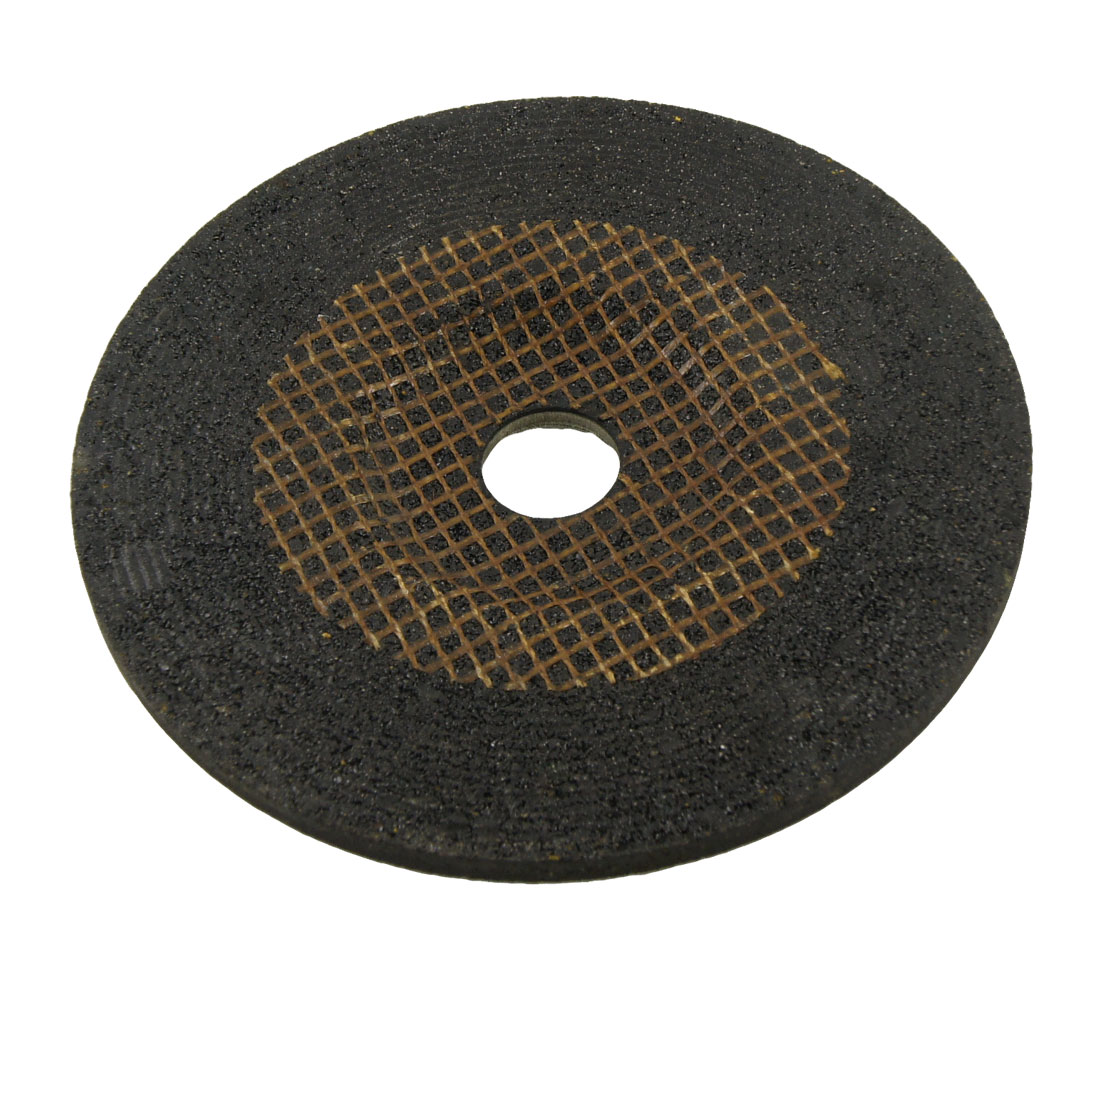 "6"" x 7/8"" x 15/64"" Metal Polishing Disc Abrasives Grinding Wheel"